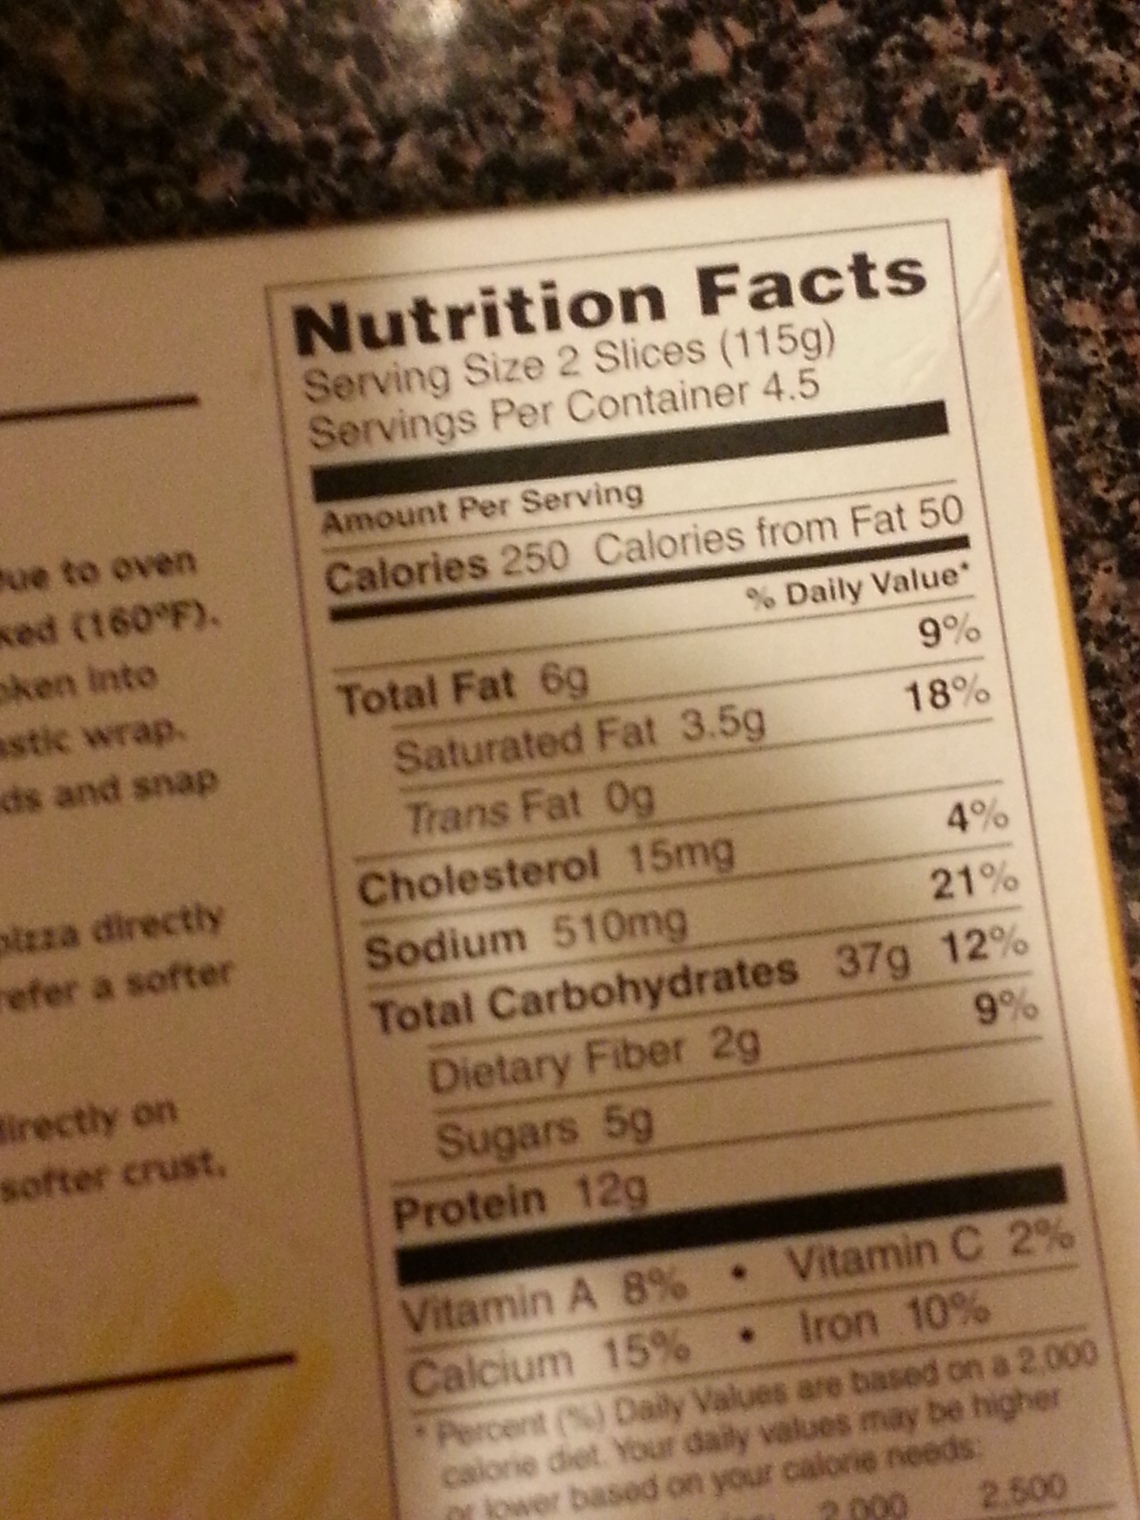 That's the serving size?